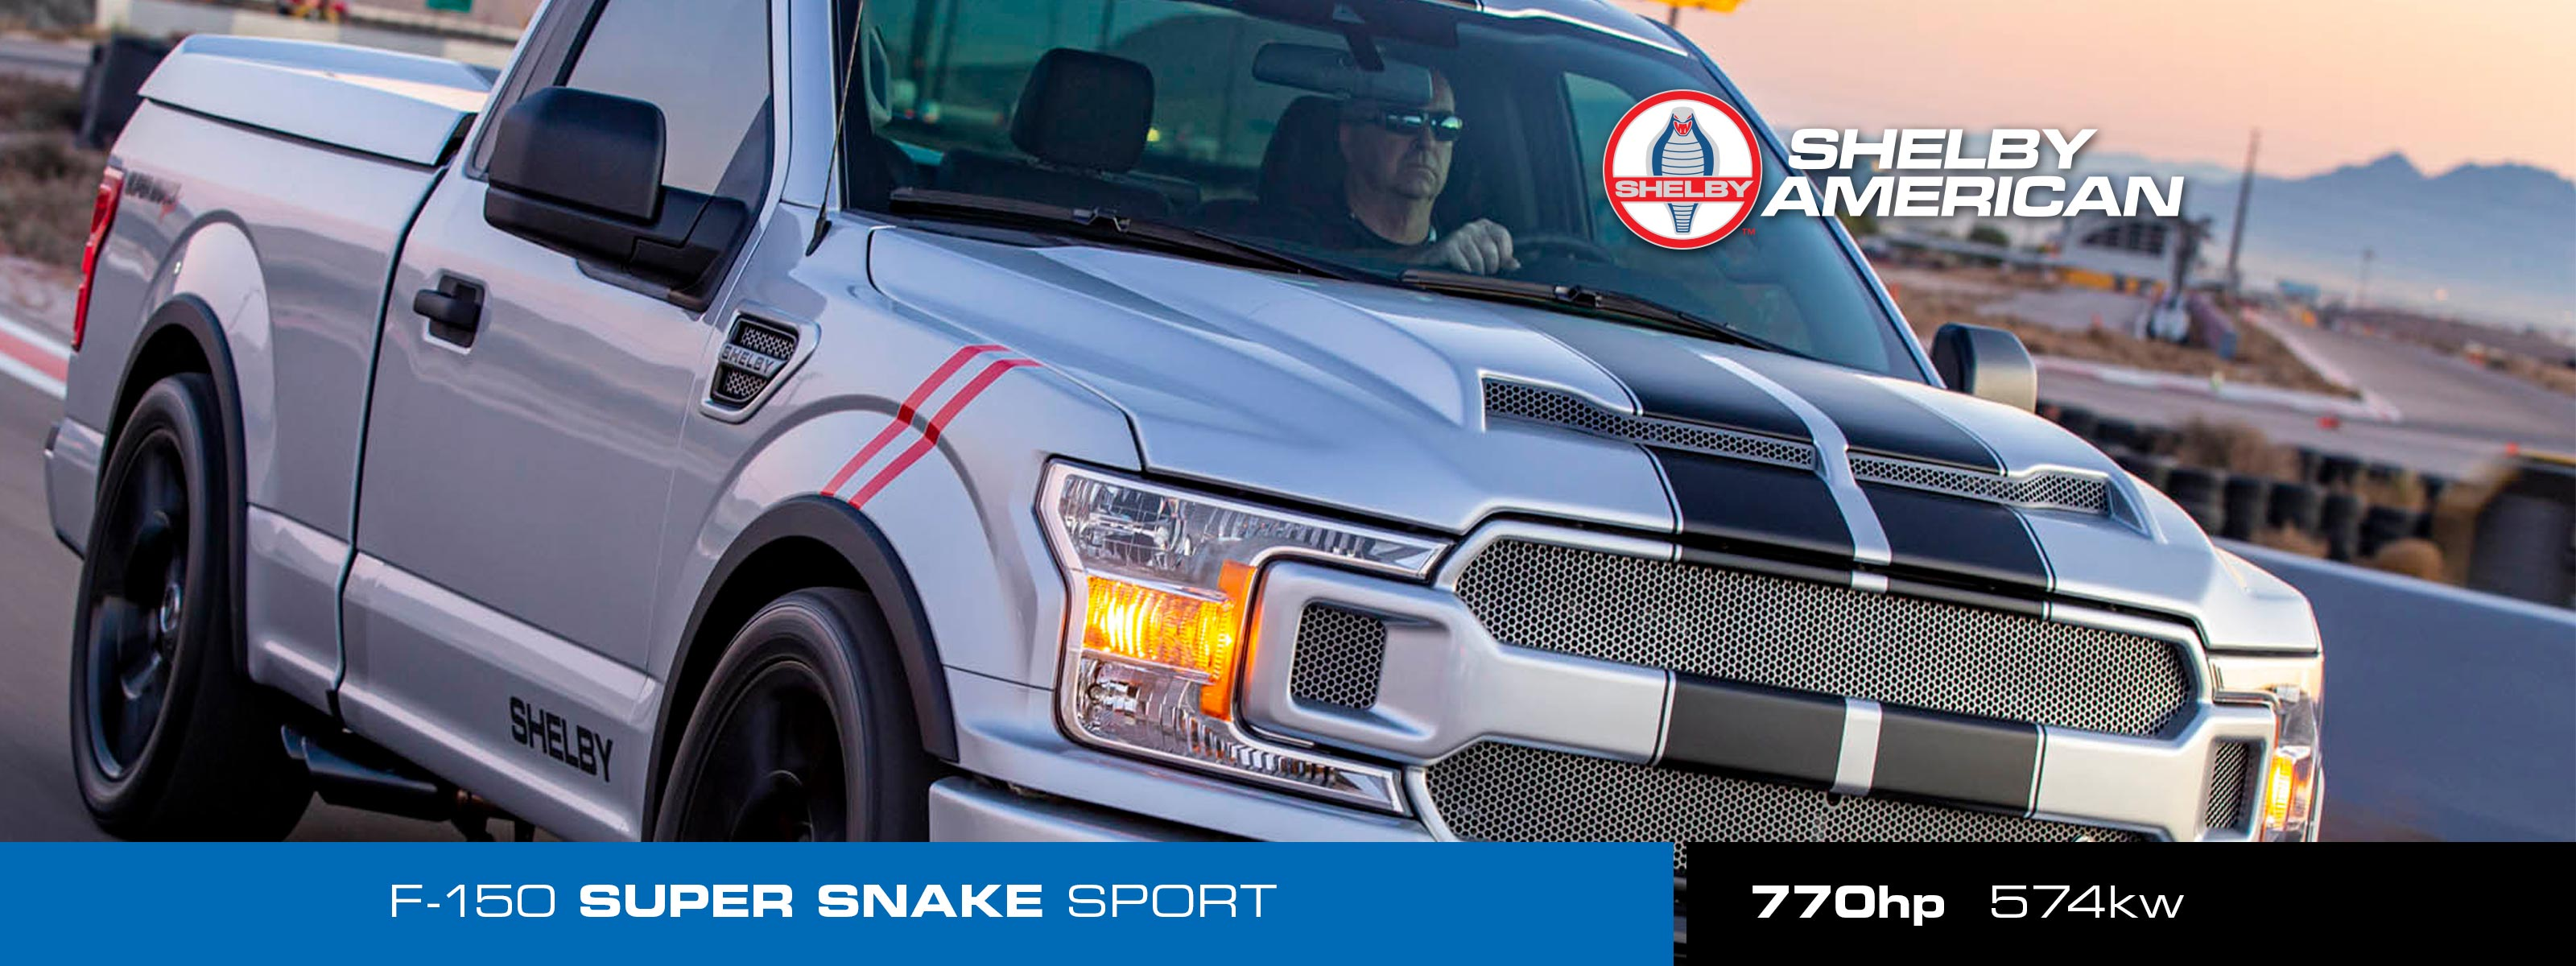 Header SHELBY F-150 Super Snake Sport